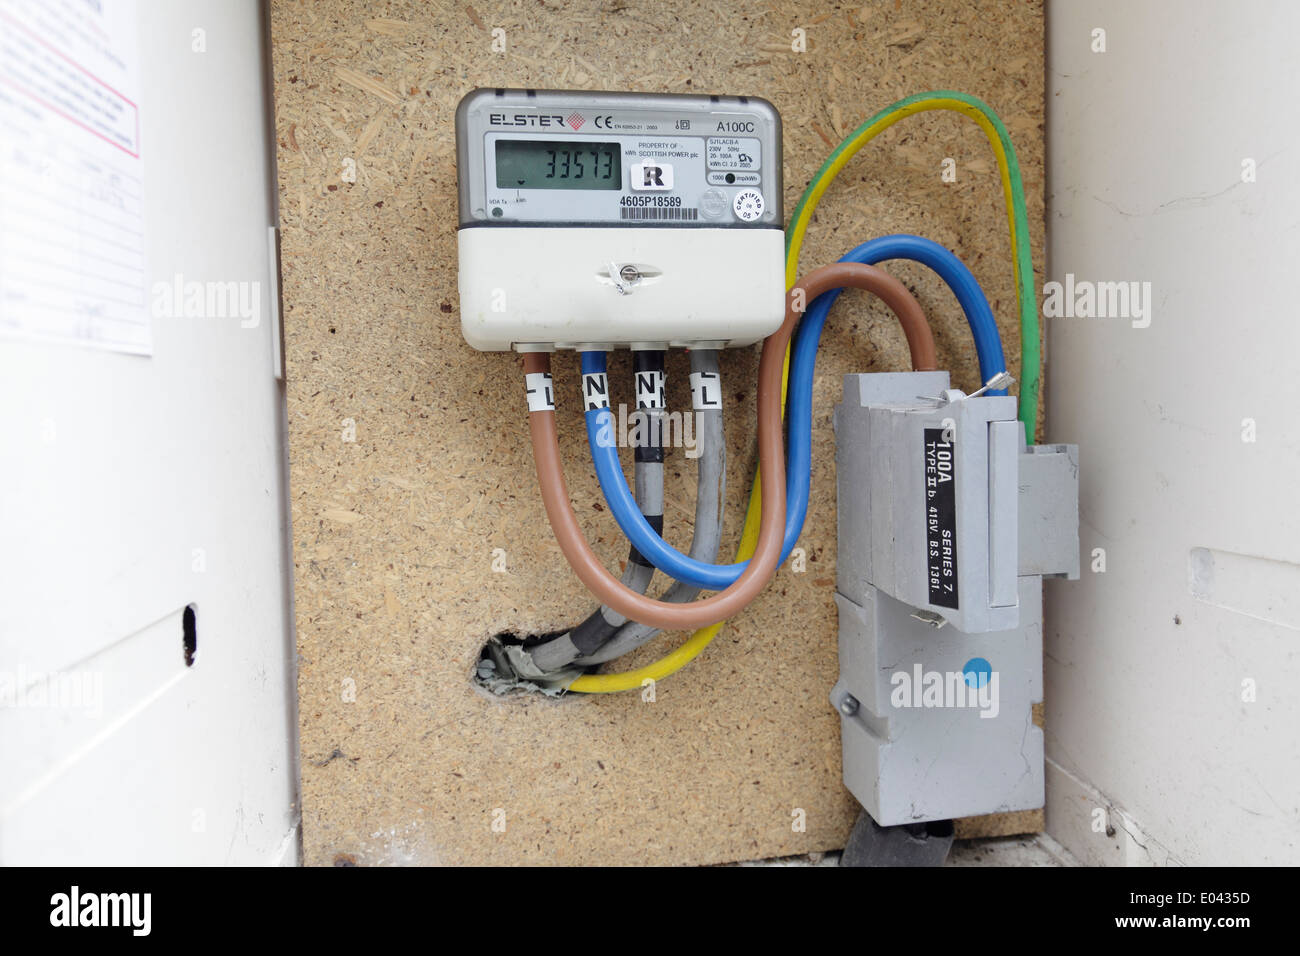 Power Pole Transformer Fuse Free Wiring Diagram For You Pioneer Mvh P8200bt A Domestic Electricity Meter Housed In An External Box Electric Outdoor Transformers